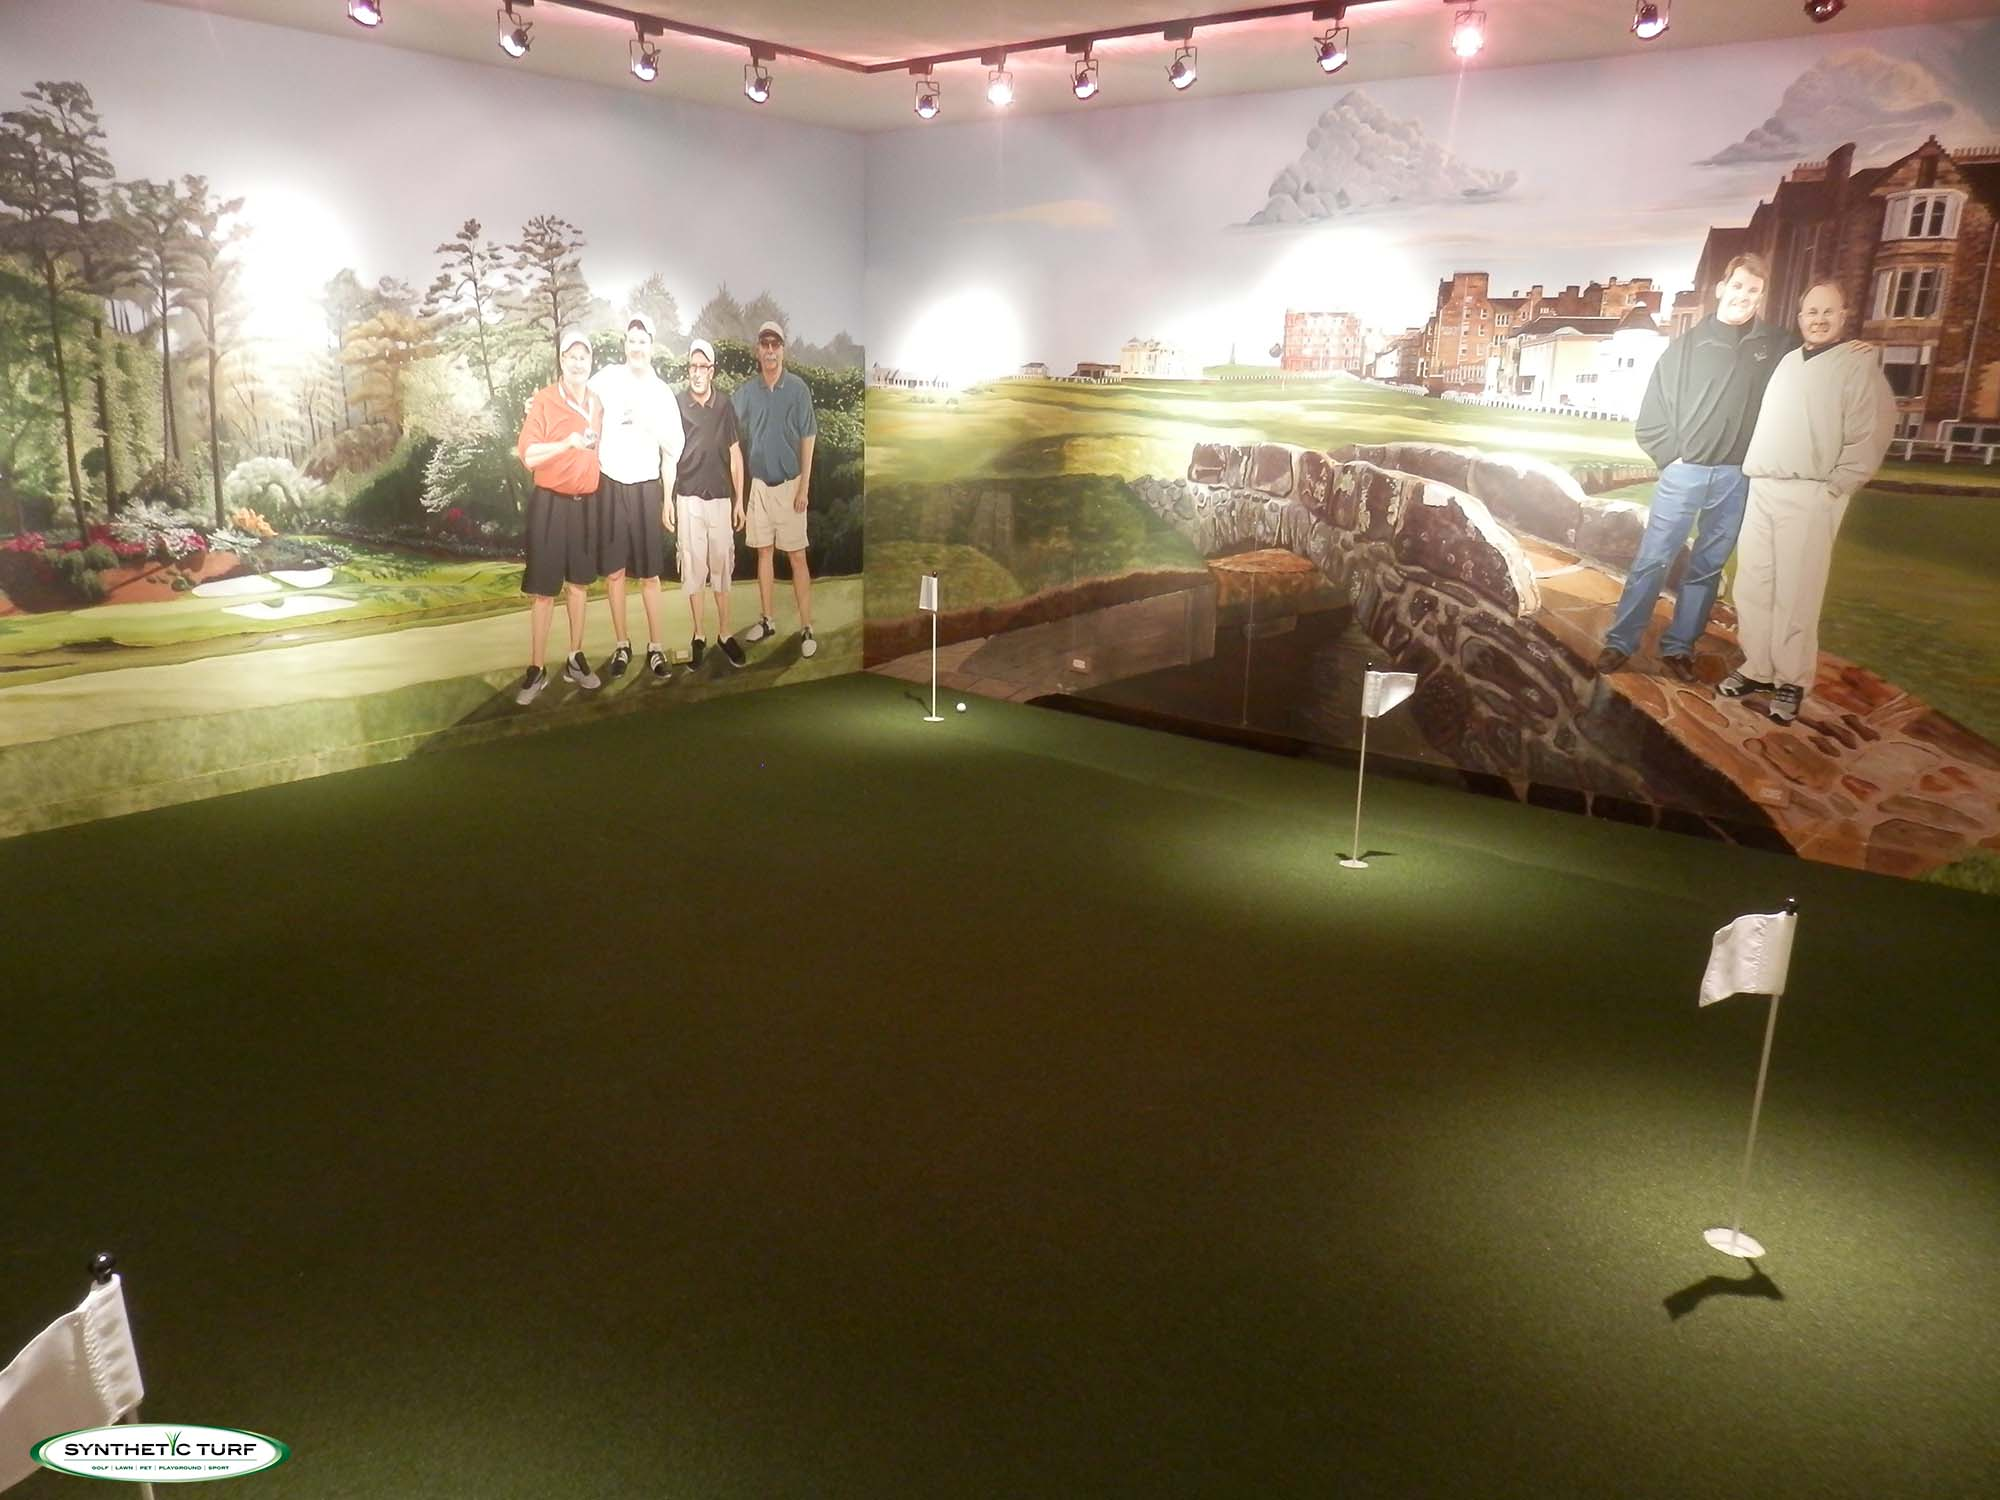 Contact Us Today For More Details About Getting Your Own Indoor Putting  Green.